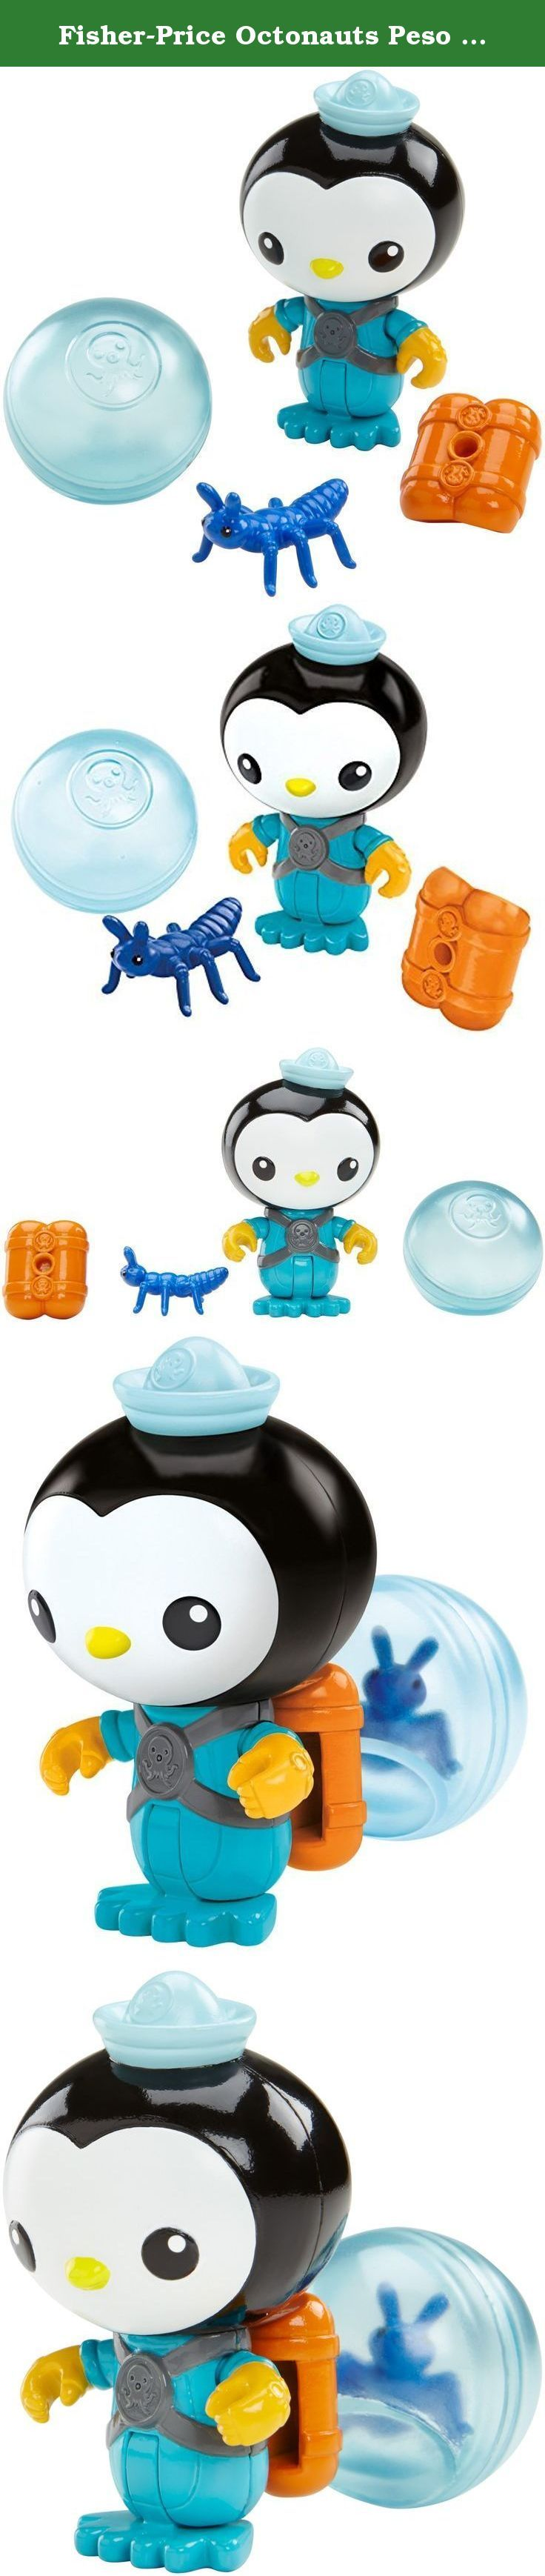 Fisher-Price Octonauts Peso and The Tree Lobster. A baby tree lobster has lost its way and it's up to peso to rescue and return this little friend to his family! Peso comes with a snap-on diving tank and rescue fish-pack that's perfect for holding and safely transporting the tree lobster! Ages 3+.